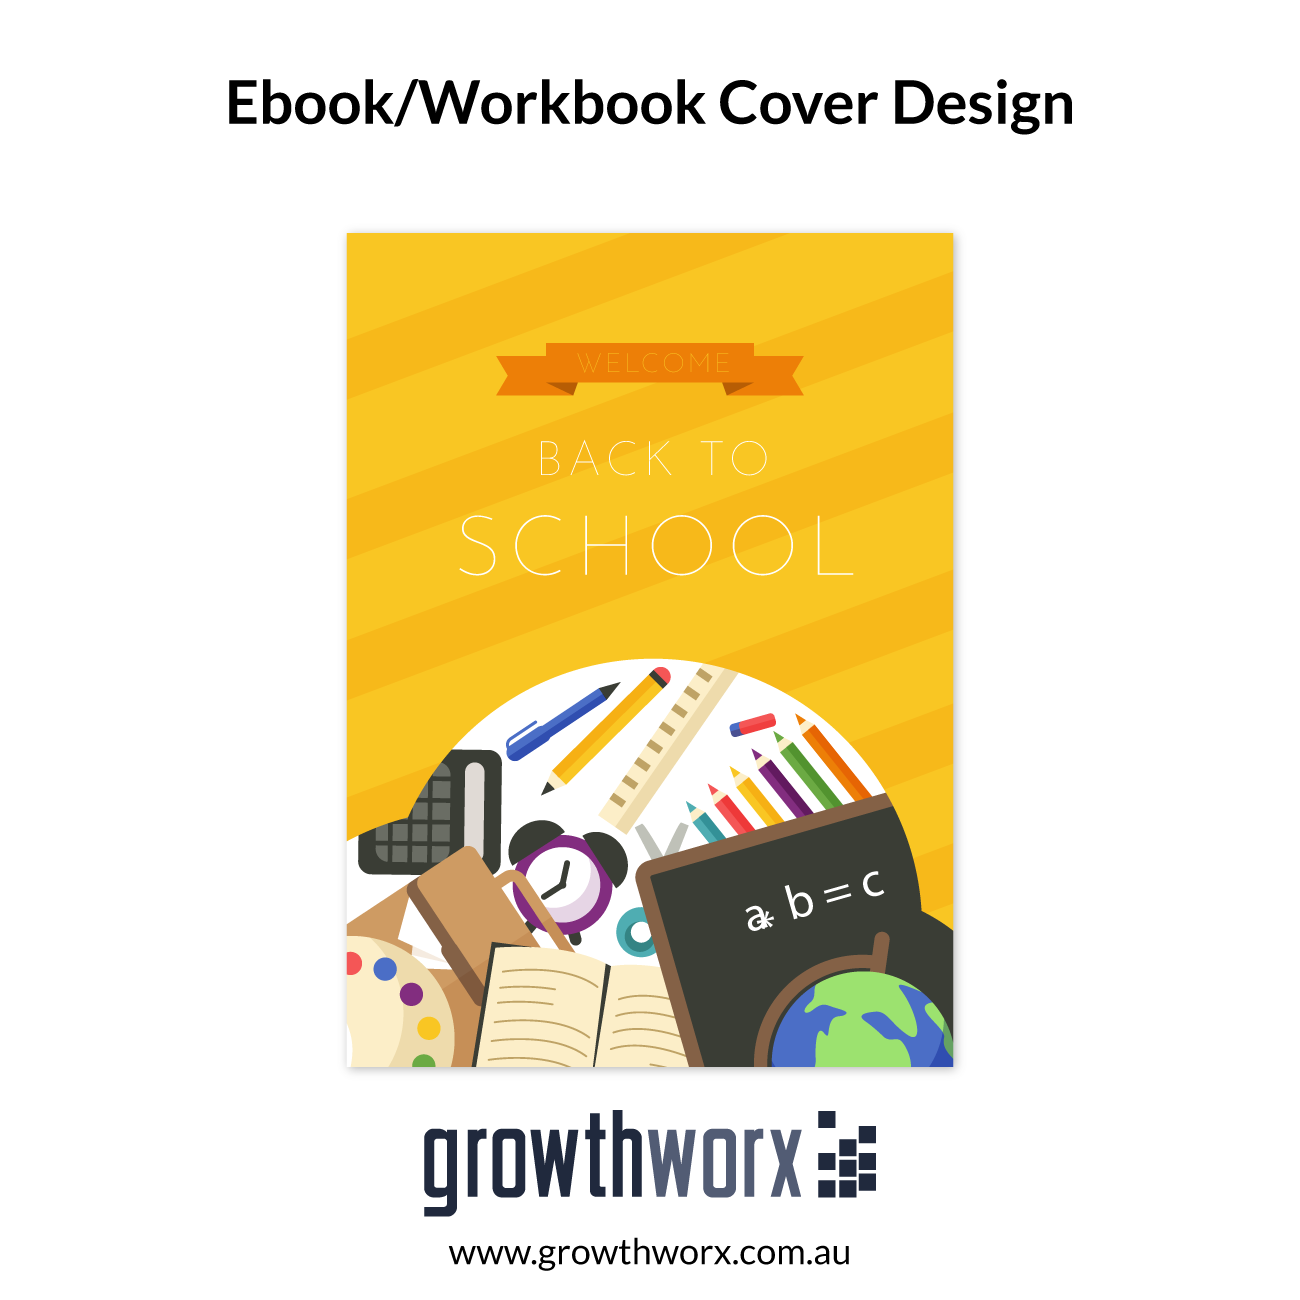 Design For Ebook/Workbook Cover , CD or DVD box, Software box, Workbook 1